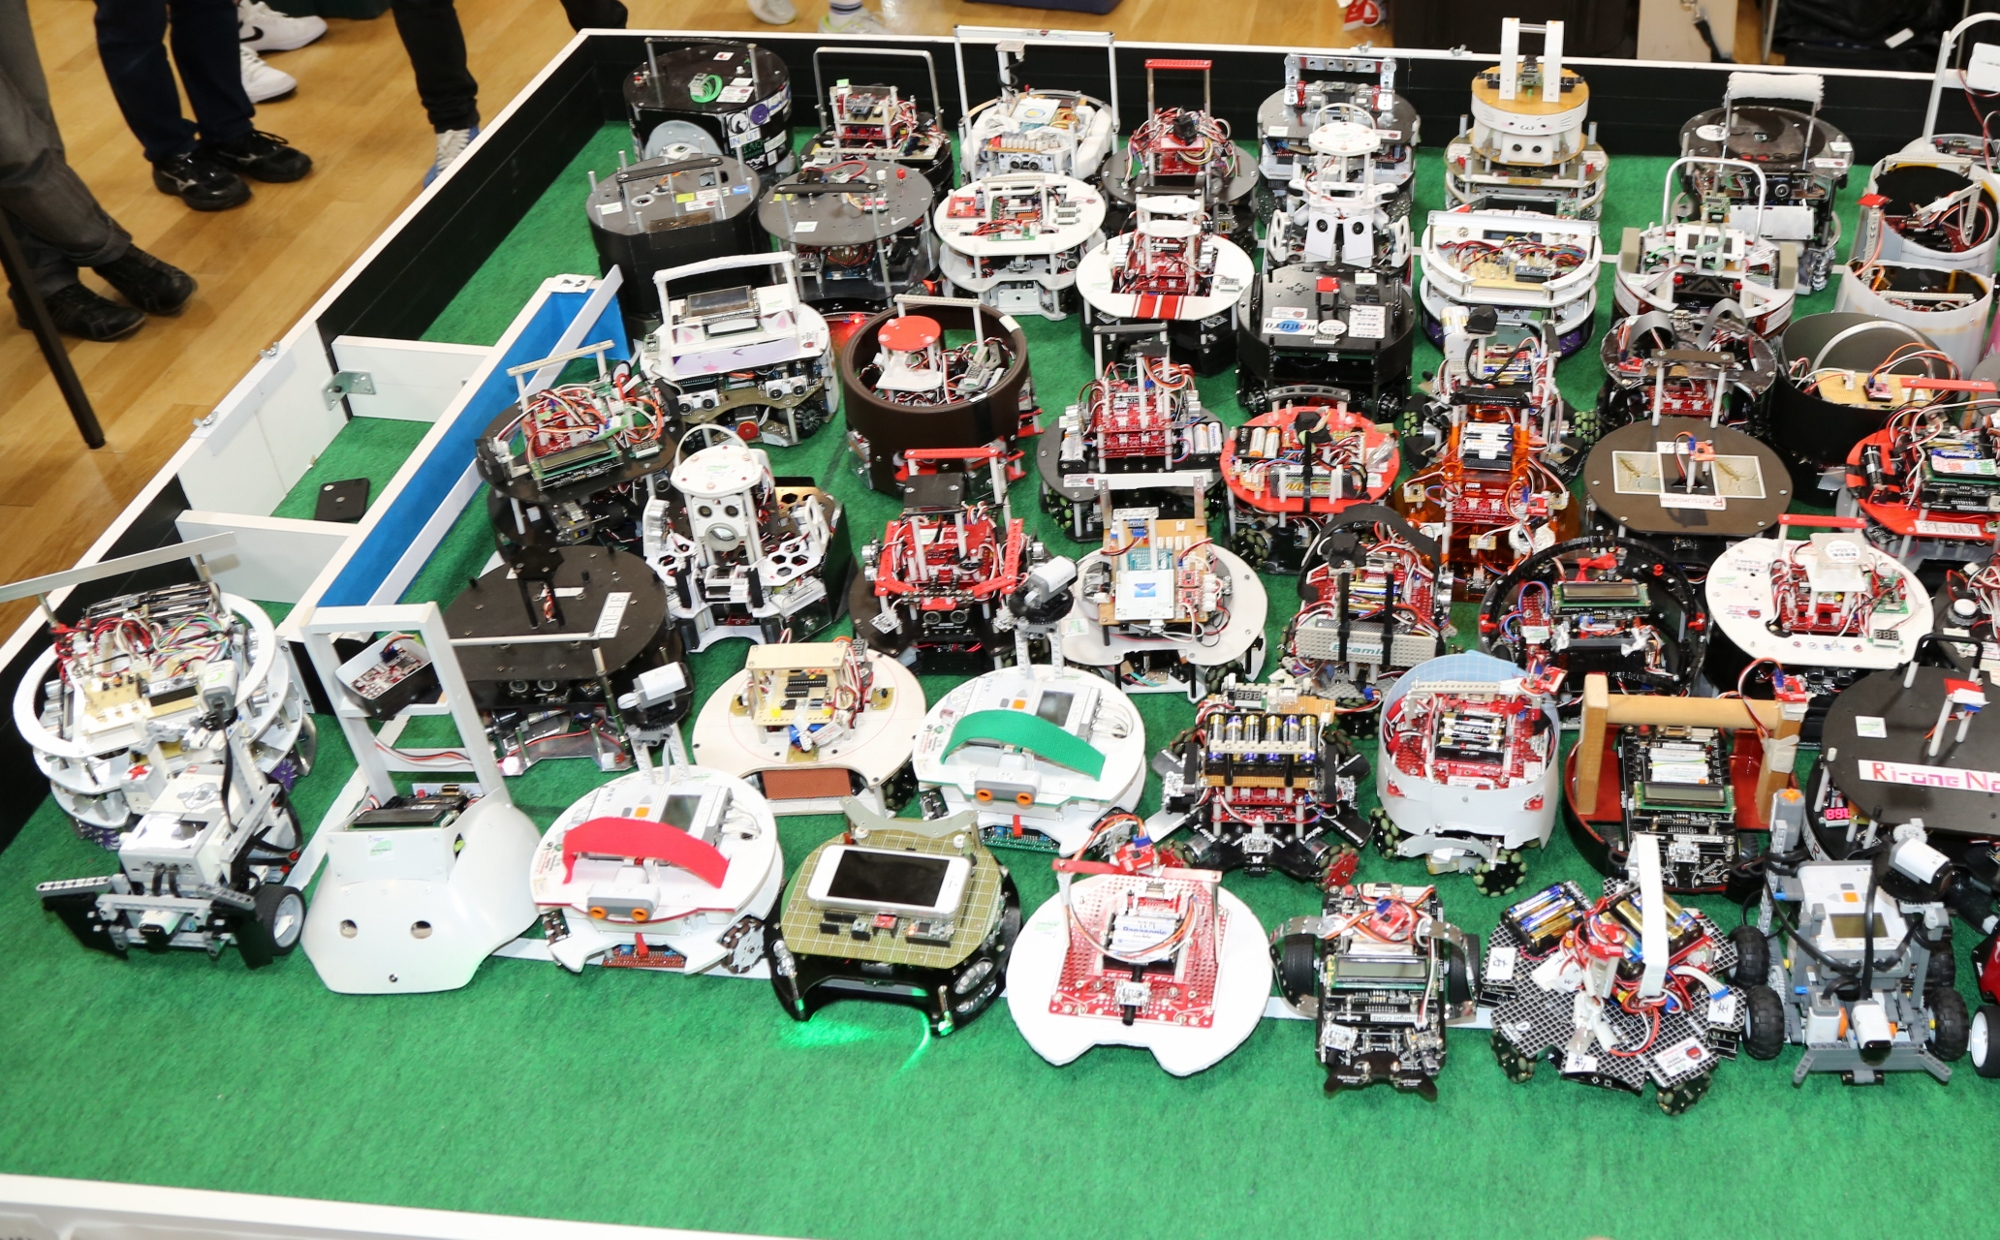 NPO岡山ロボット技術子供育成協会